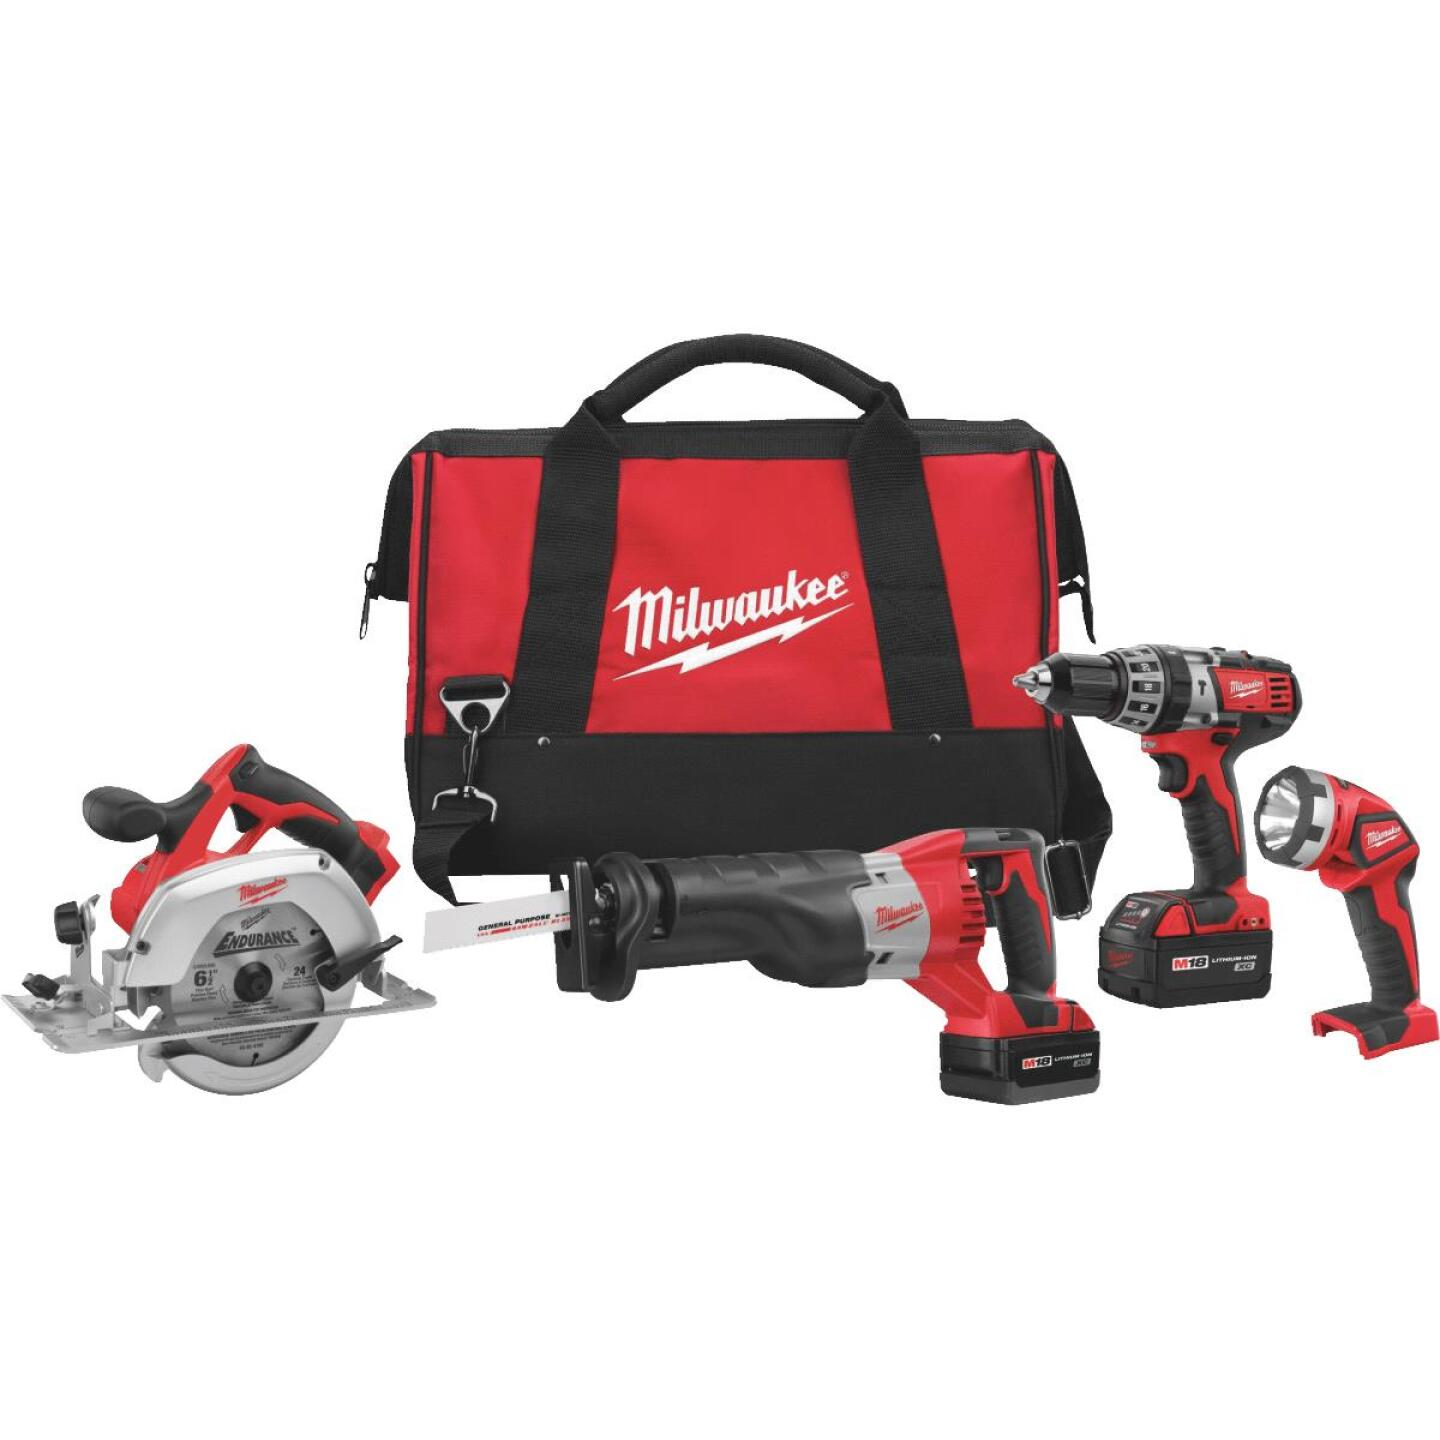 Milwaukee 4-Tool M18 Lithium-Ion Hammer Drill, Reciprocating Saw, Circular Saw & Work Light Cordless Tool Combo Kit Image 1